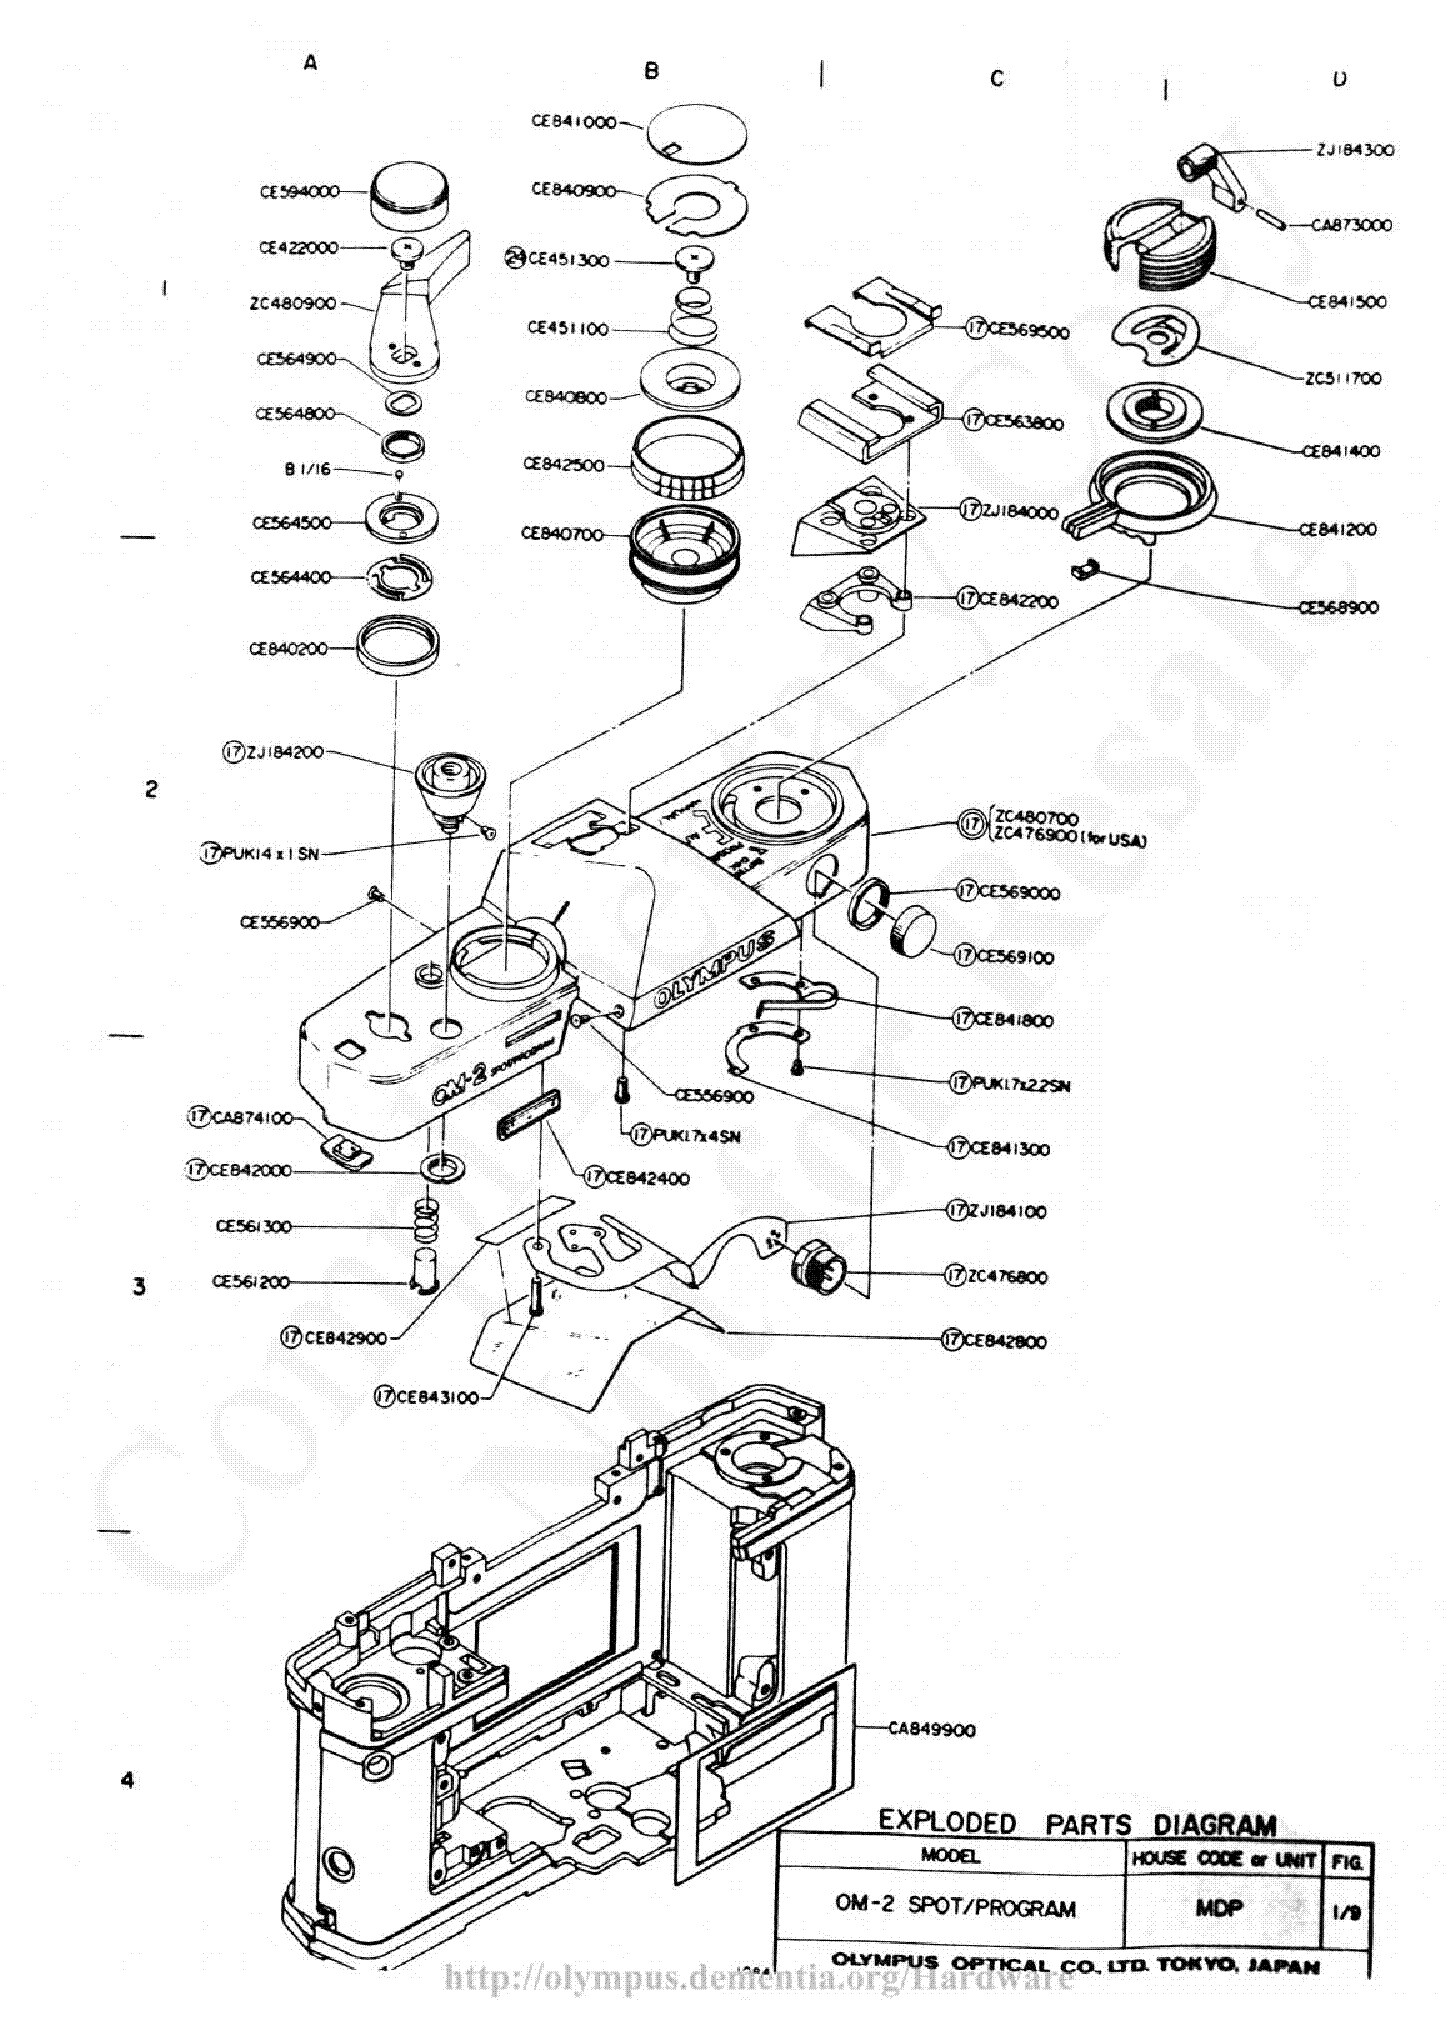 OLYMPUS OM-2S EXPLODED PARTS DIAGRAM Service Manual